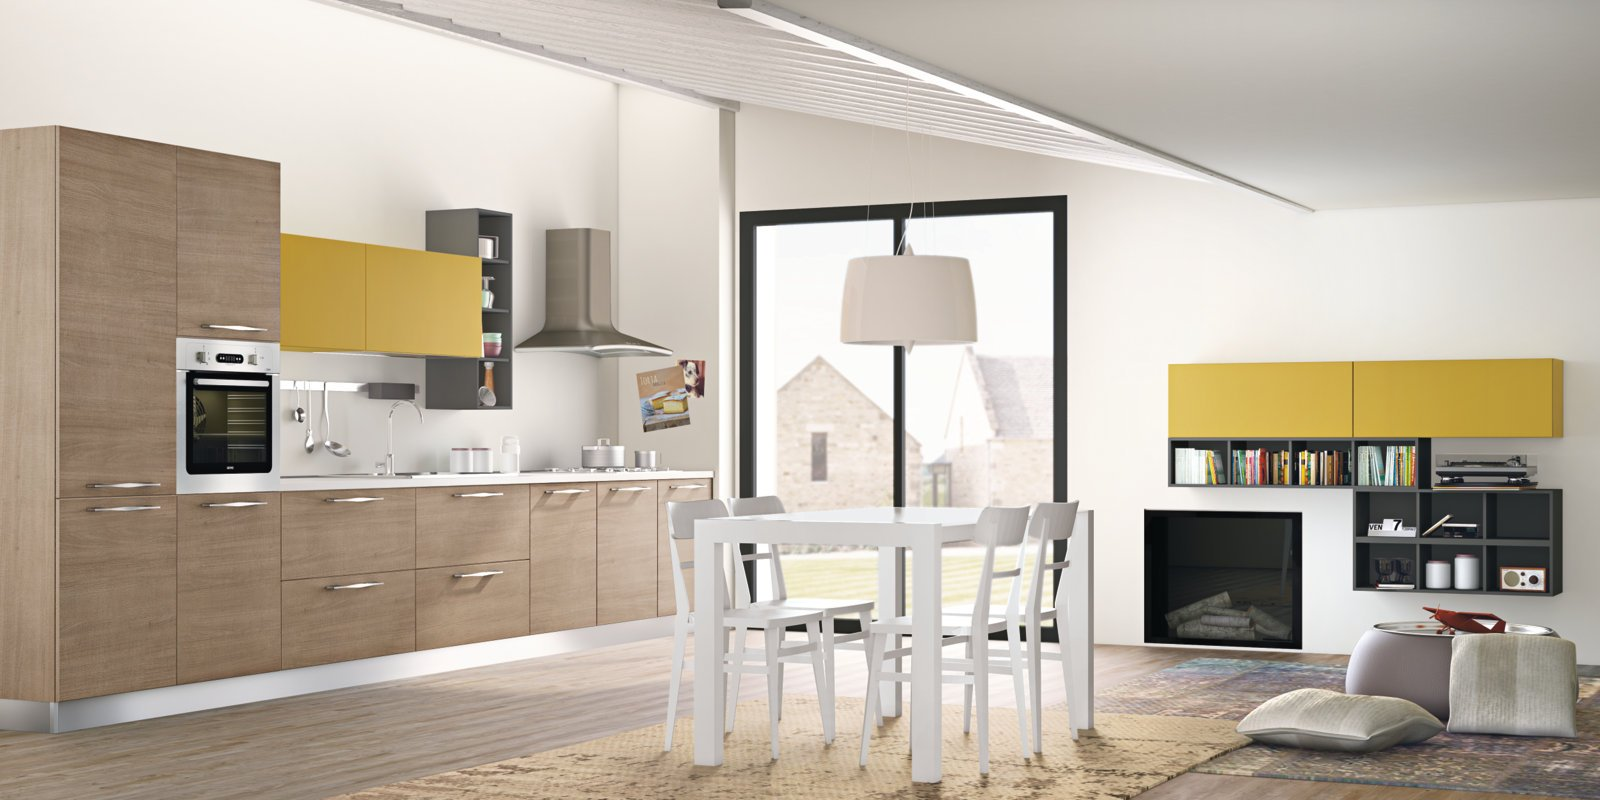 Cucina componibile lineare con maniglie inka by creo kitchens by lube - Cucina lube nita ...